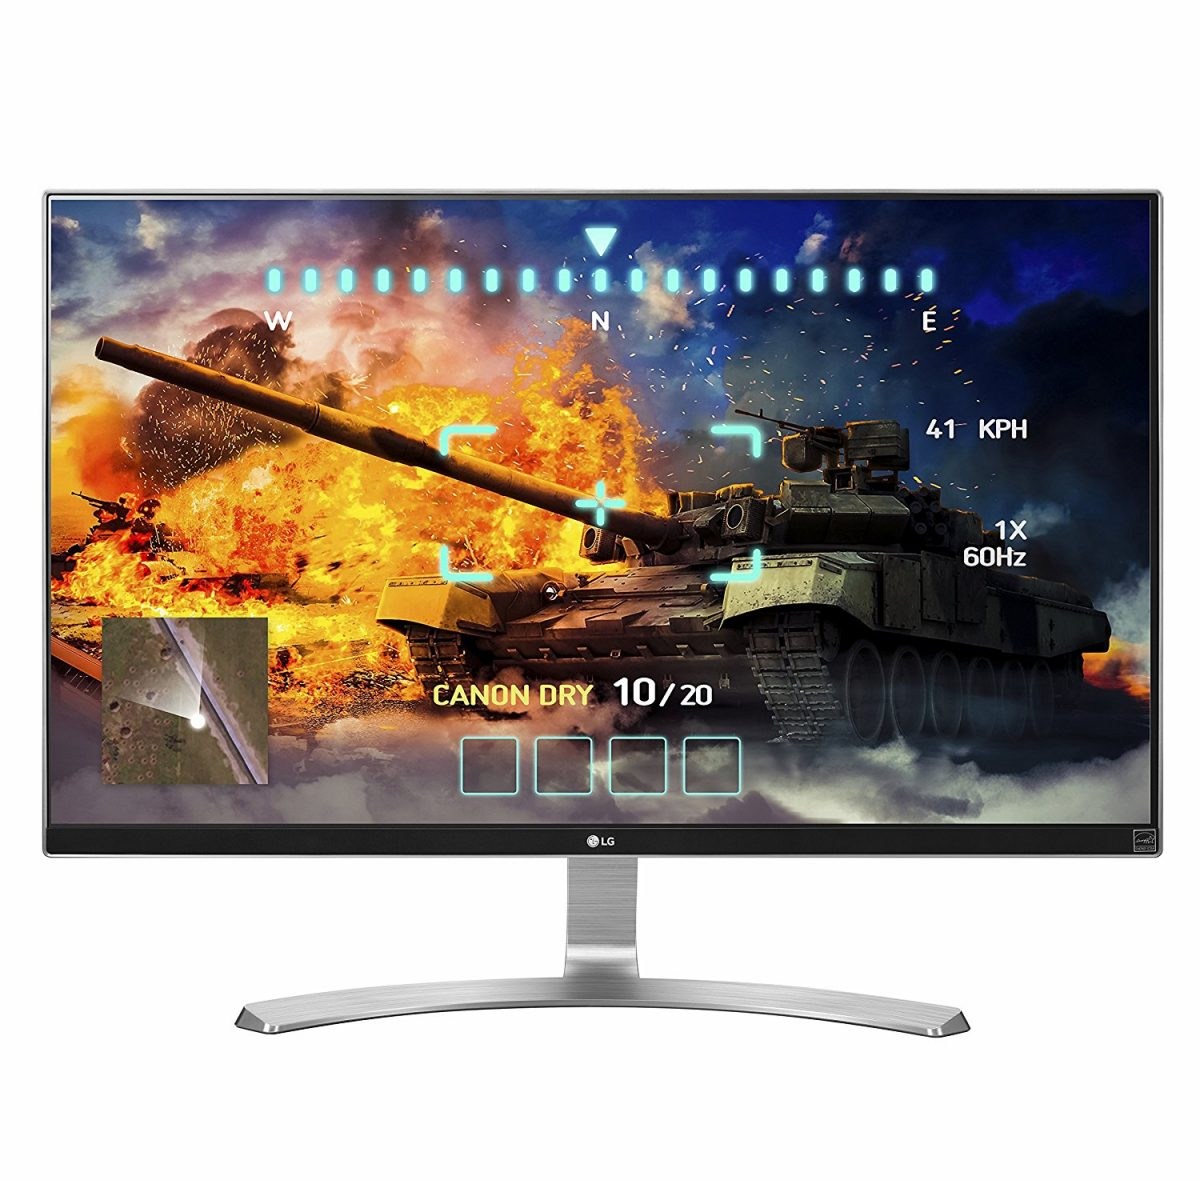 best 4k monitor for xbox one x and ps4 pro in 2018. Black Bedroom Furniture Sets. Home Design Ideas